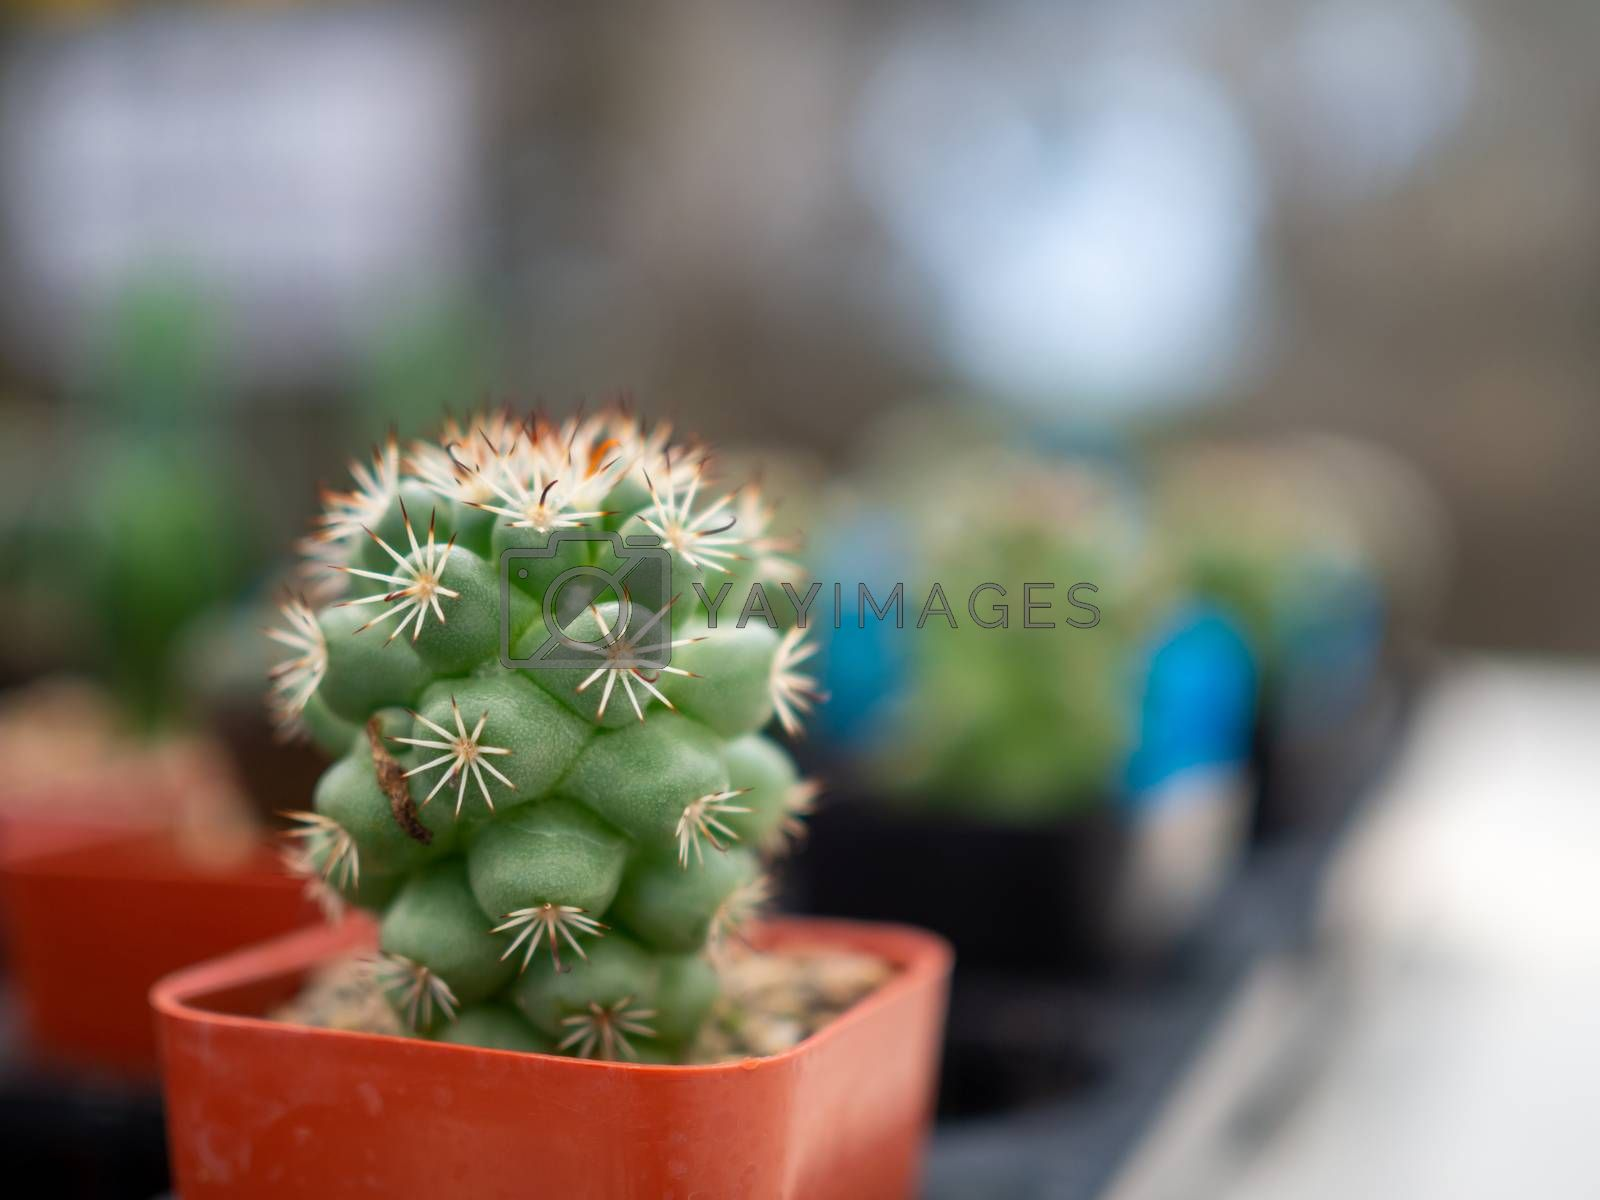 A close up of a cactus On a blurred background